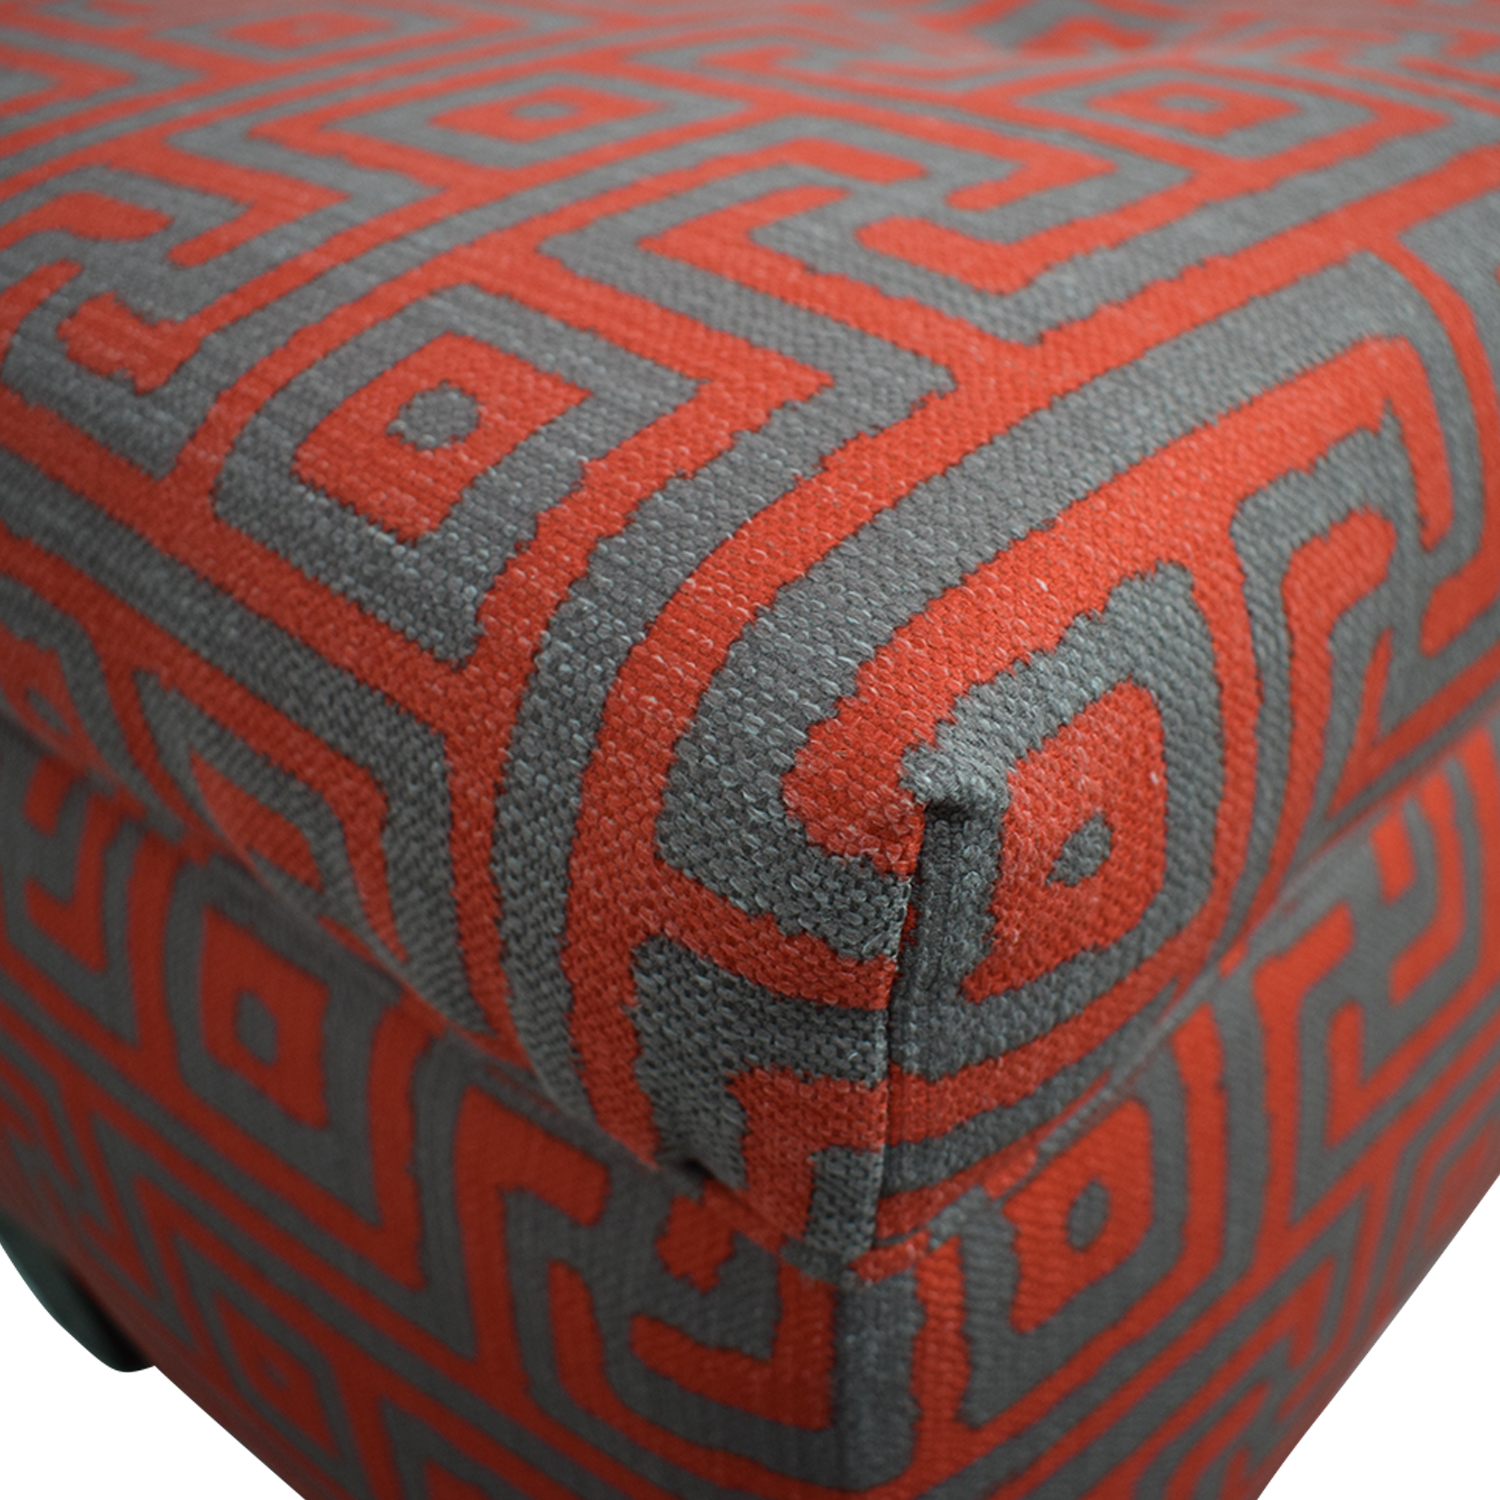 Sole Designs Sole Designs Brooke Red Upholstered Storage Bench dimensions